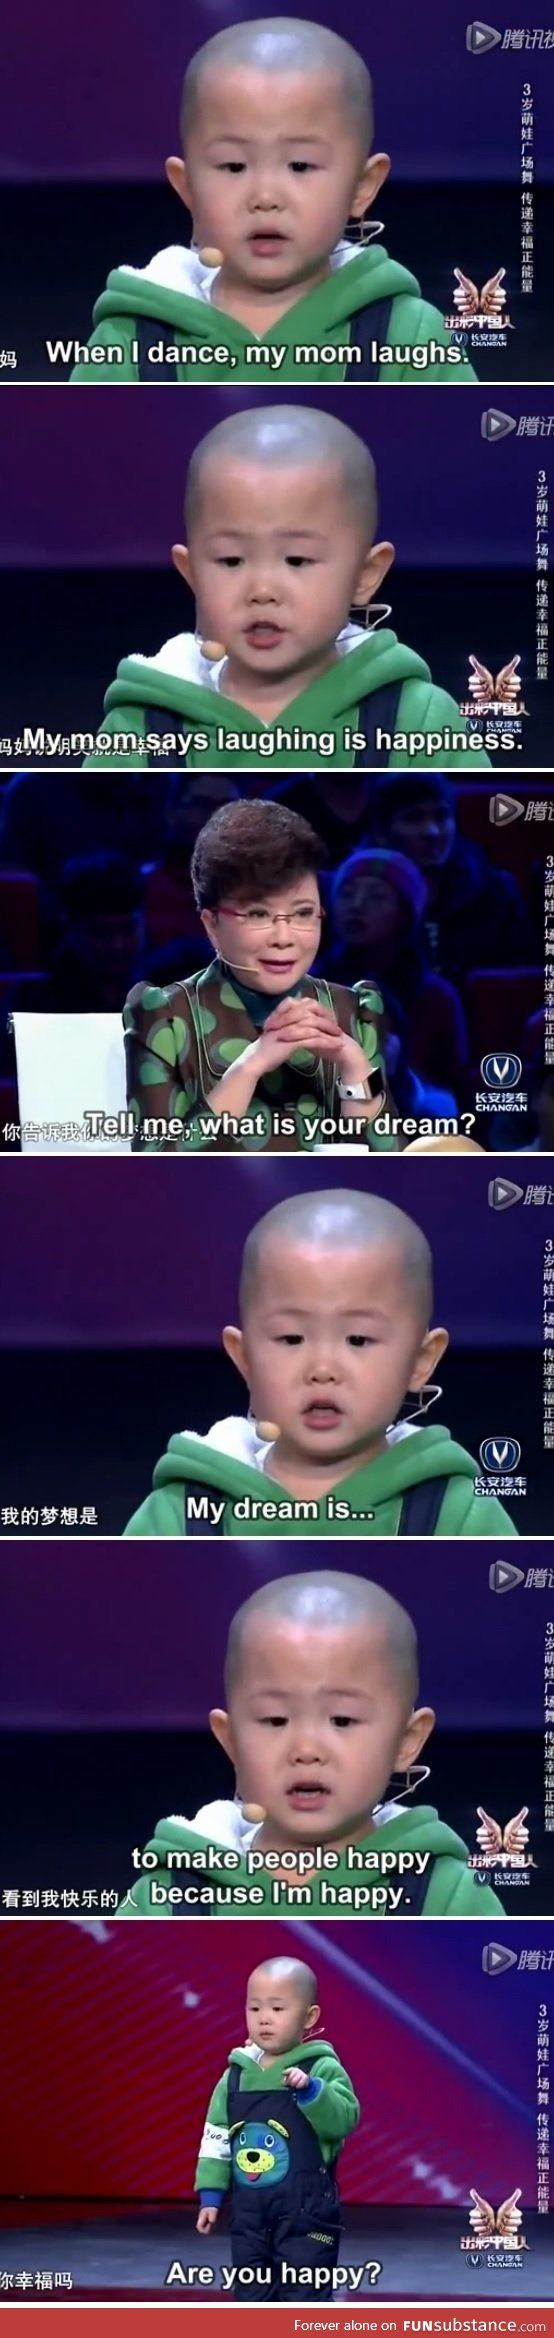 I've seen the video this is from. It's an adorable two year old boy on a Chinese talent show and he's the sweetest kid you'll ever see!